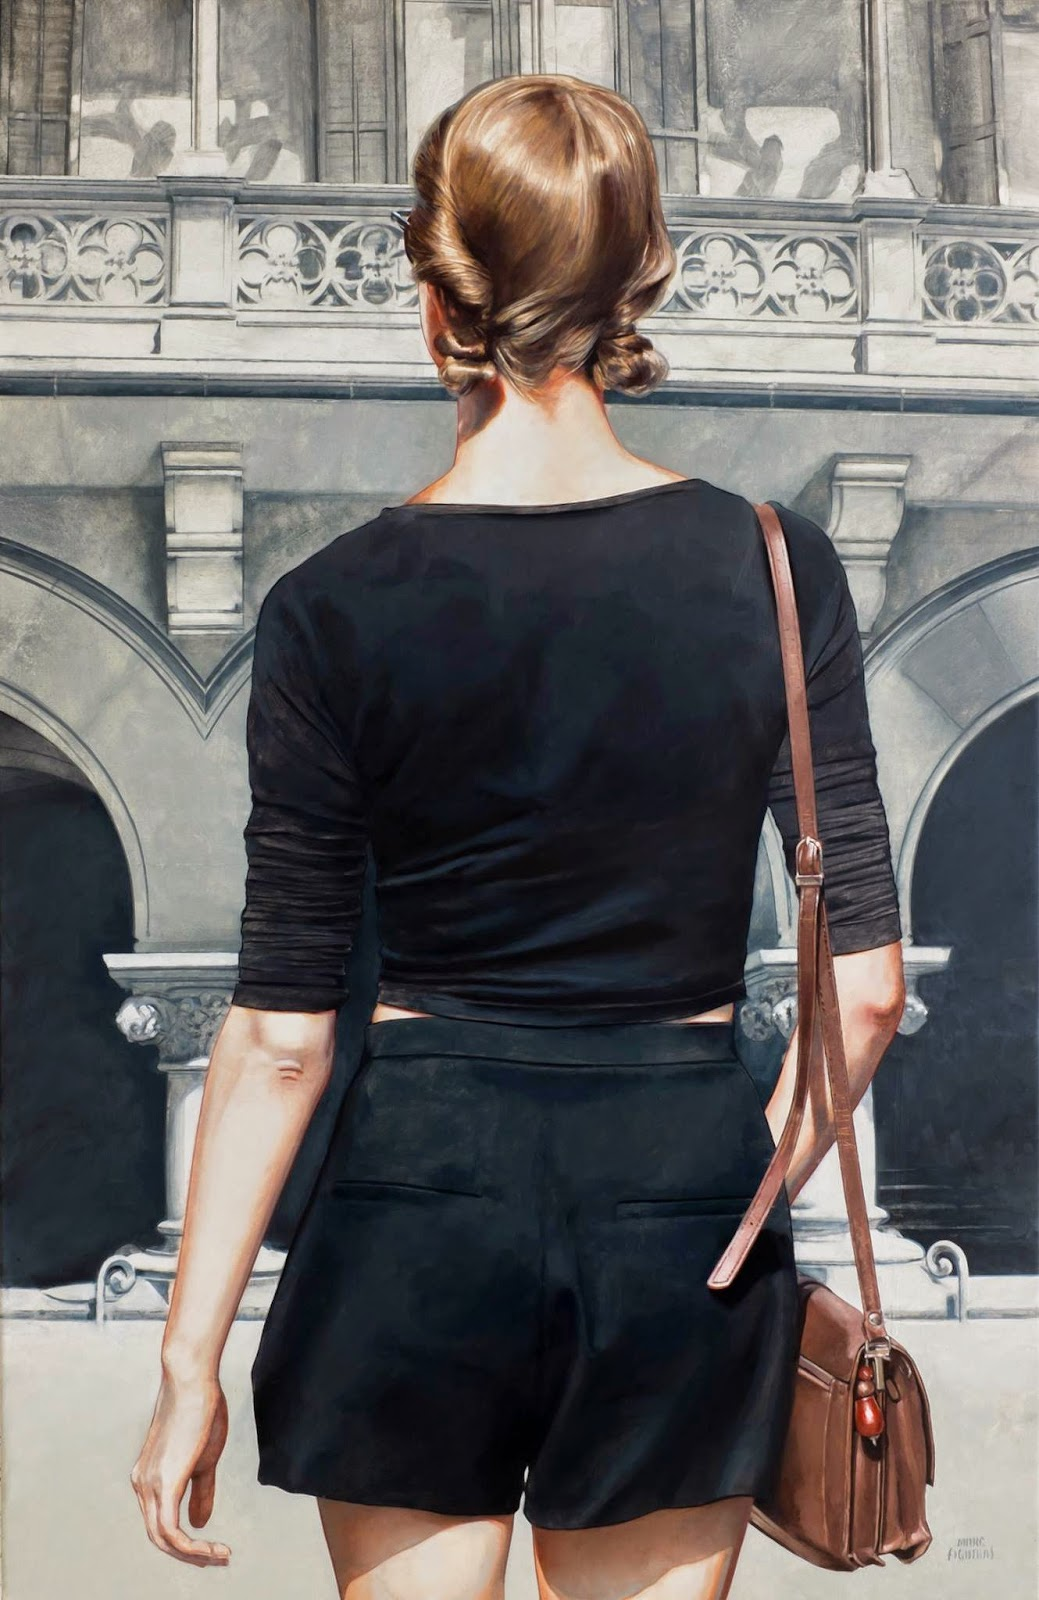 Hyper Realistic Girls Figure Painting By Marc Figueras (20)